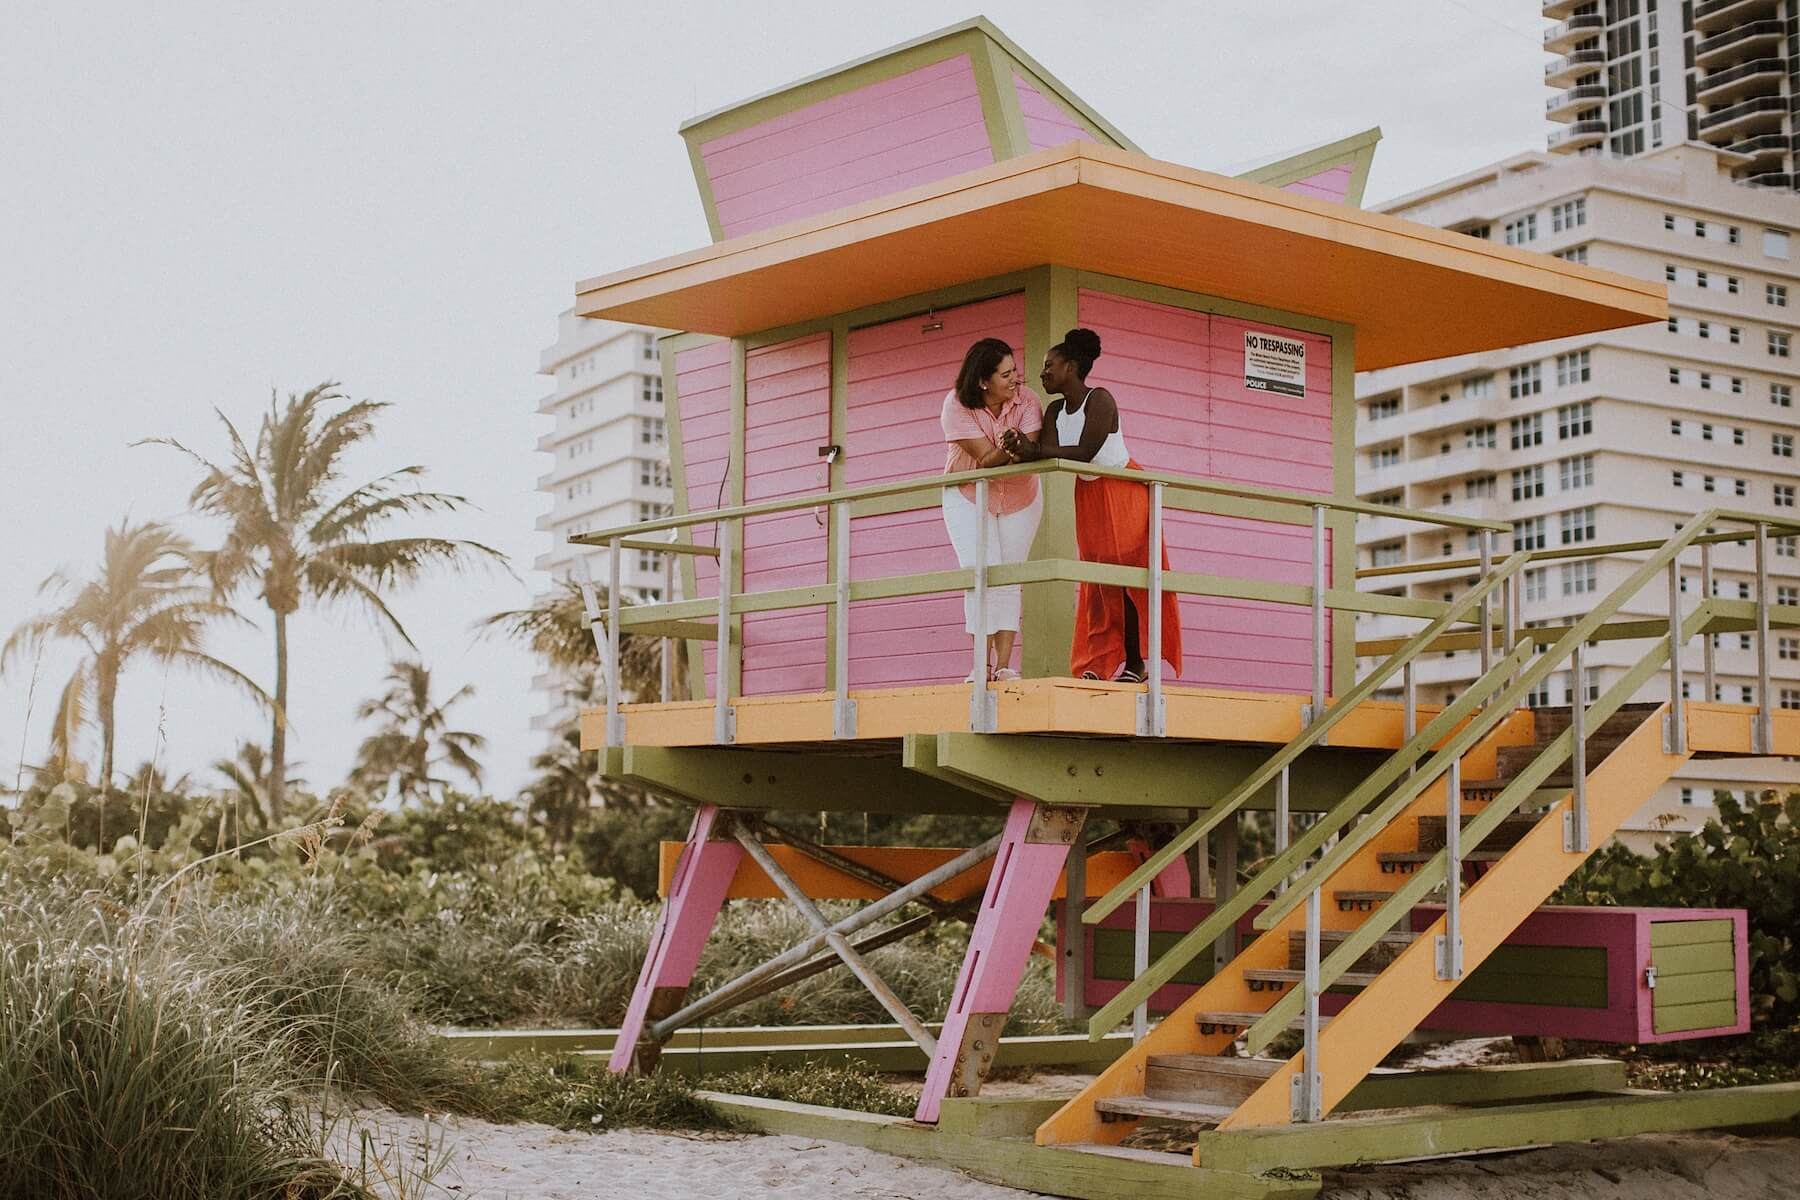 LGBTQ couple looking at each other while standing a lifeguard tower in Miami, Florida